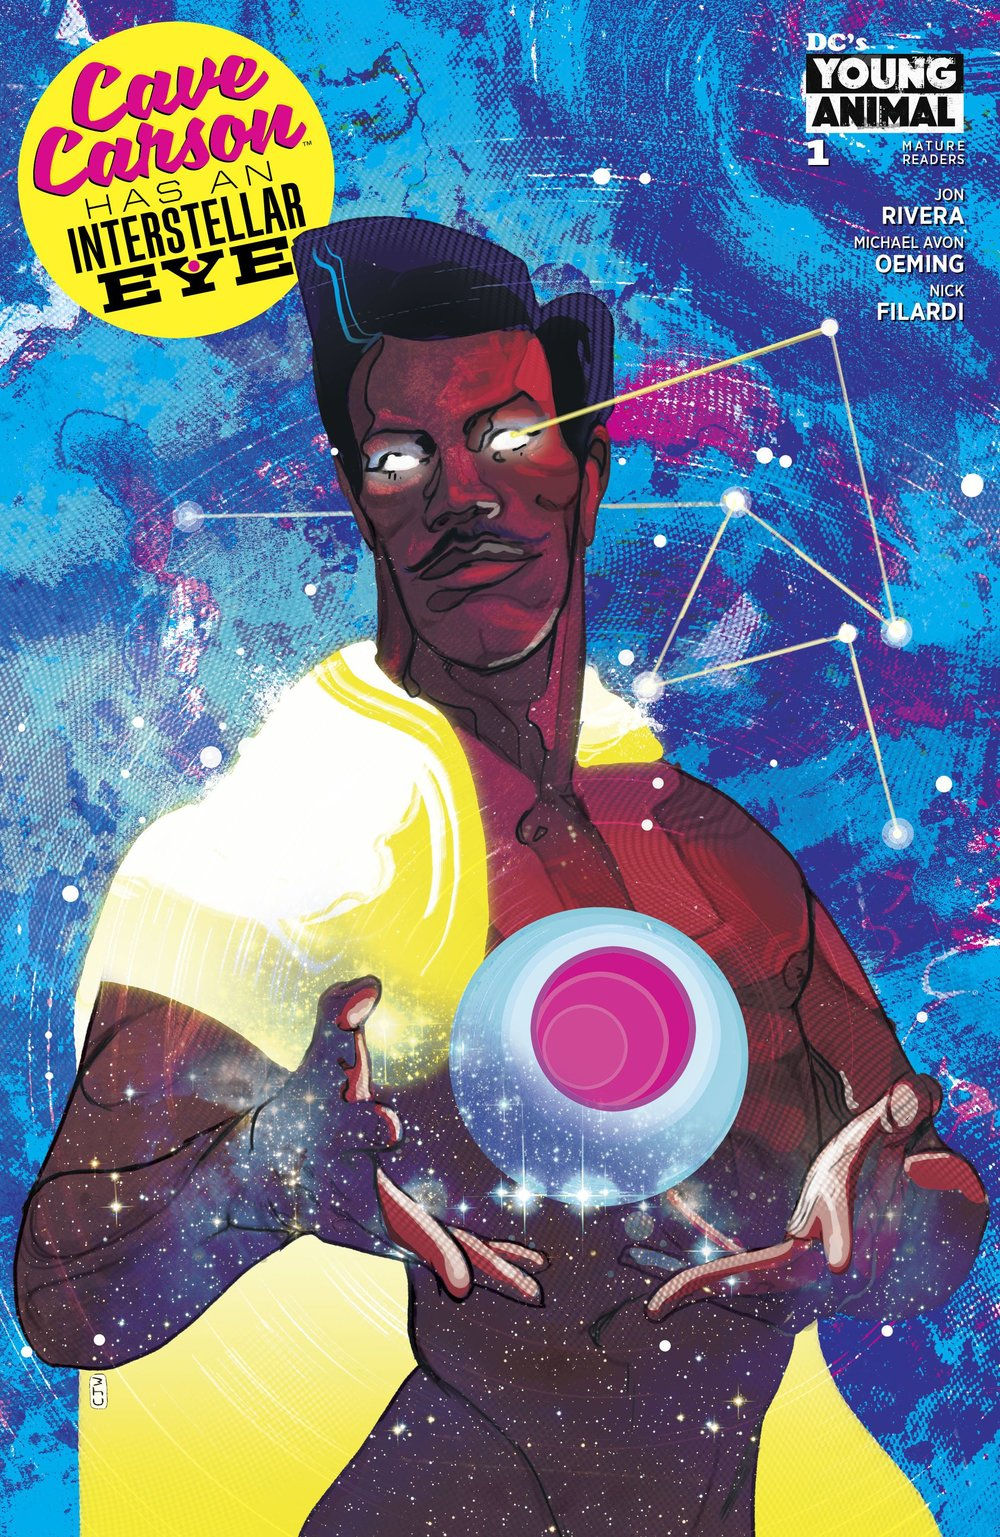 Episode 26 Variant of the Week! - (DC) Cave Carson Has an Interstellar Eye (Variant)Cover by Christian WardWritten by Jonathan RiveraIllustrated by Michael Avon OemingDid the Content Match the Drapes? - Yes!